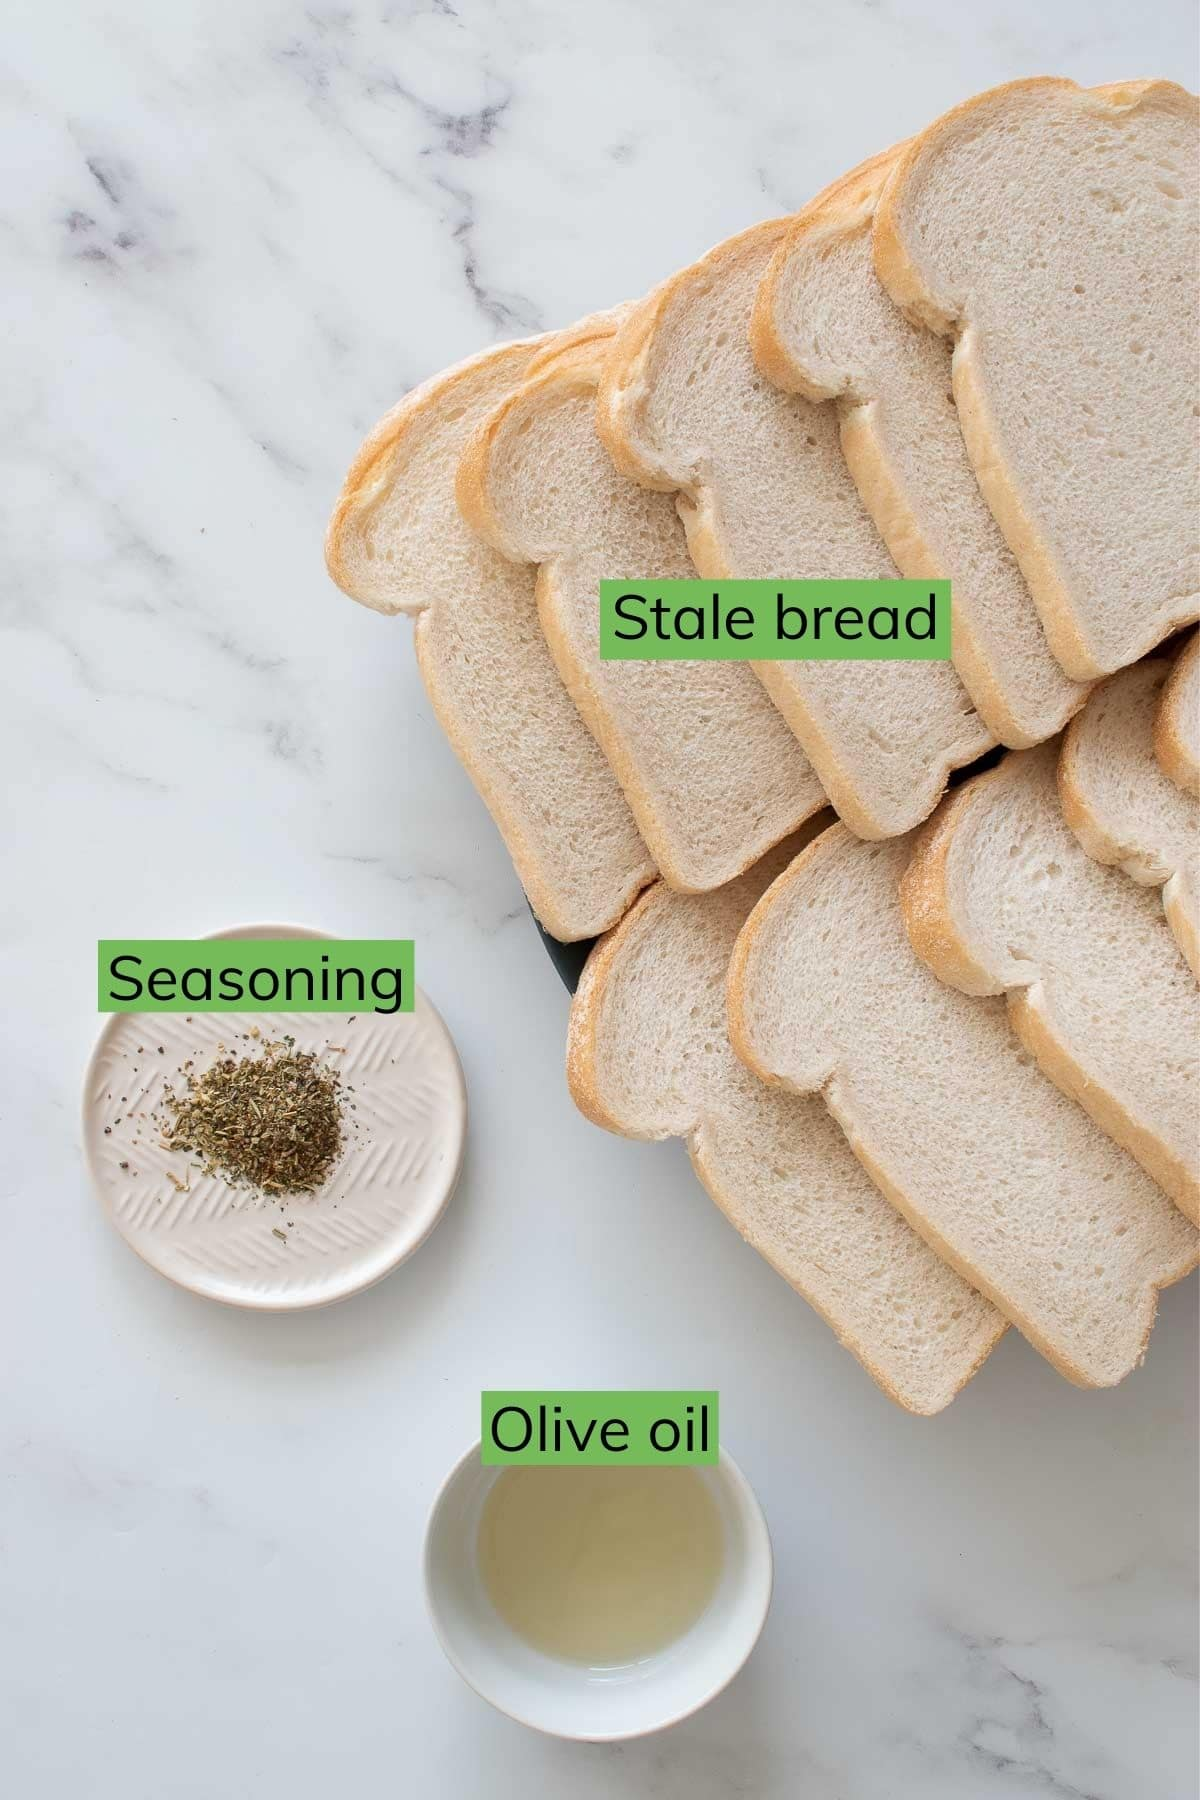 Stale bread, seasoning and olive oil on a table.